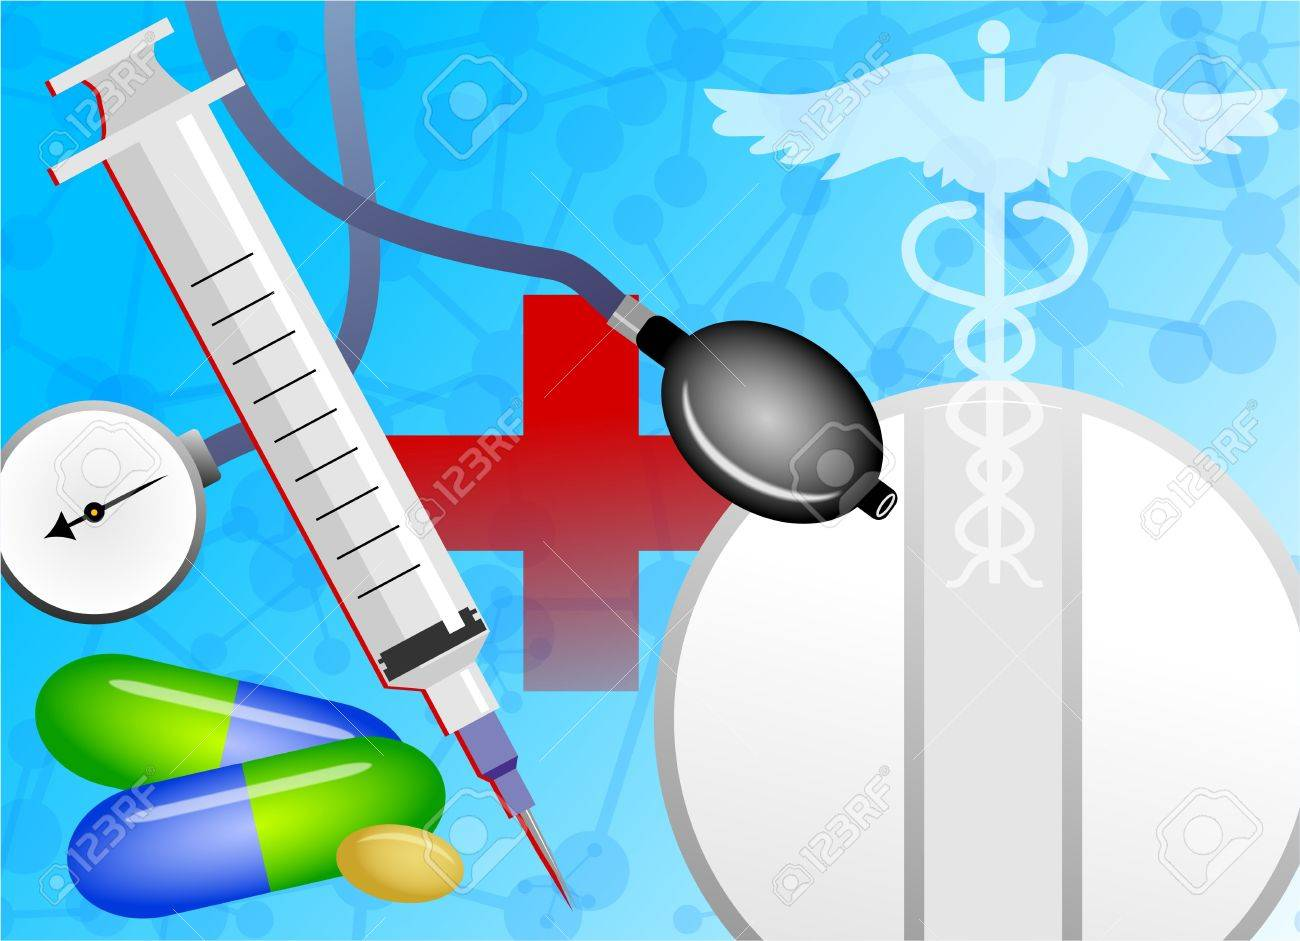 Abstract Medical Background Design With Health Related Objects 1300x941